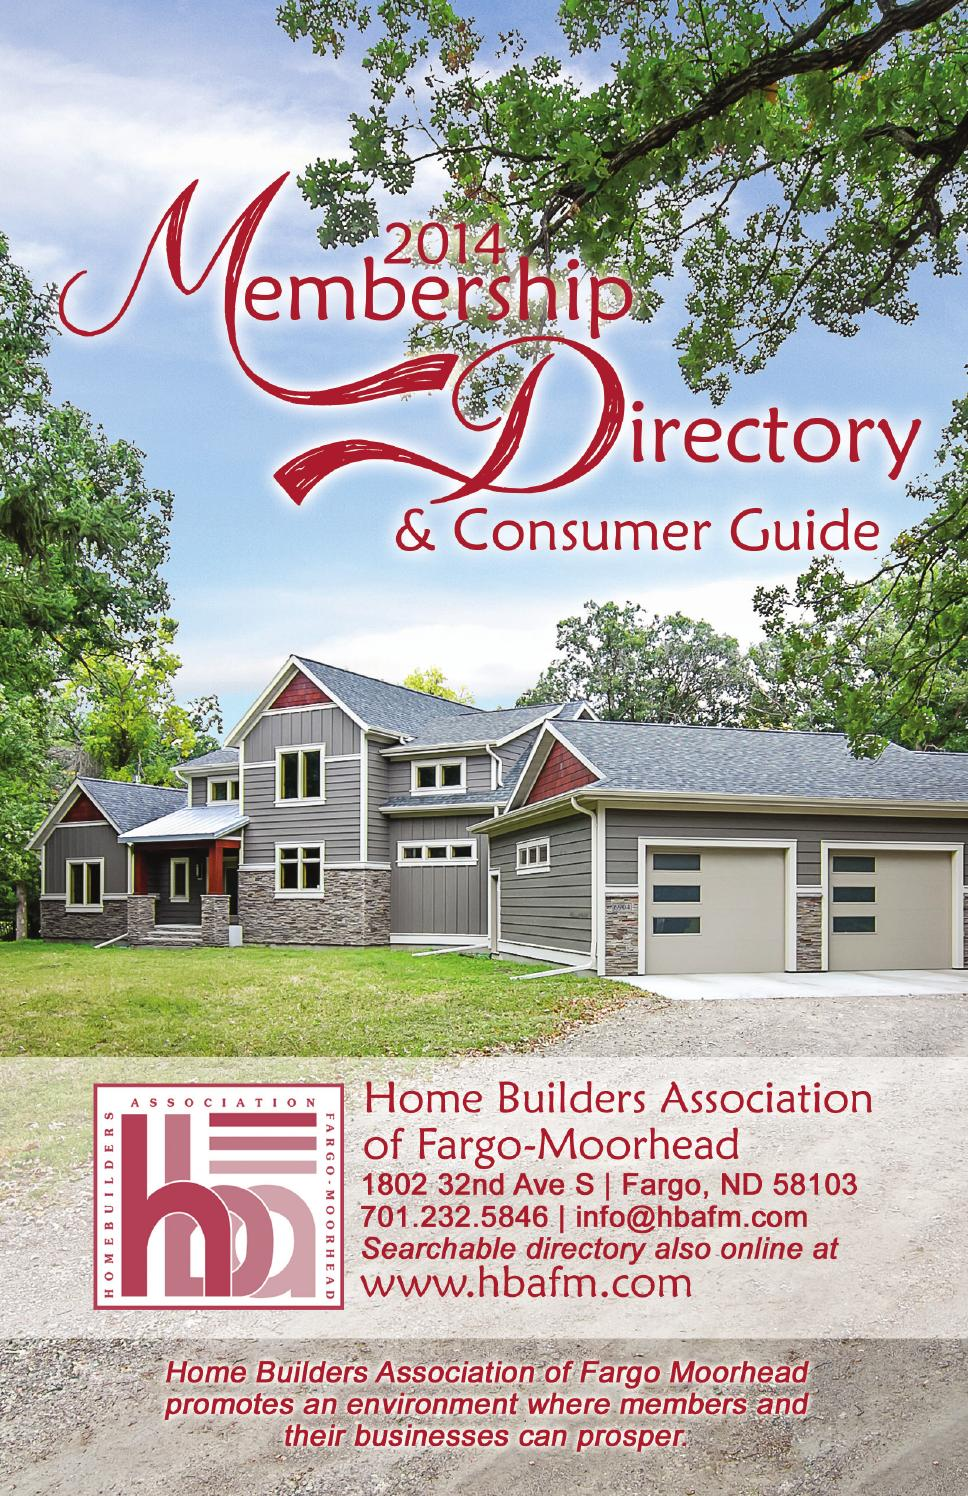 Home Builders and New Home Construction - NewHomeGuide.com